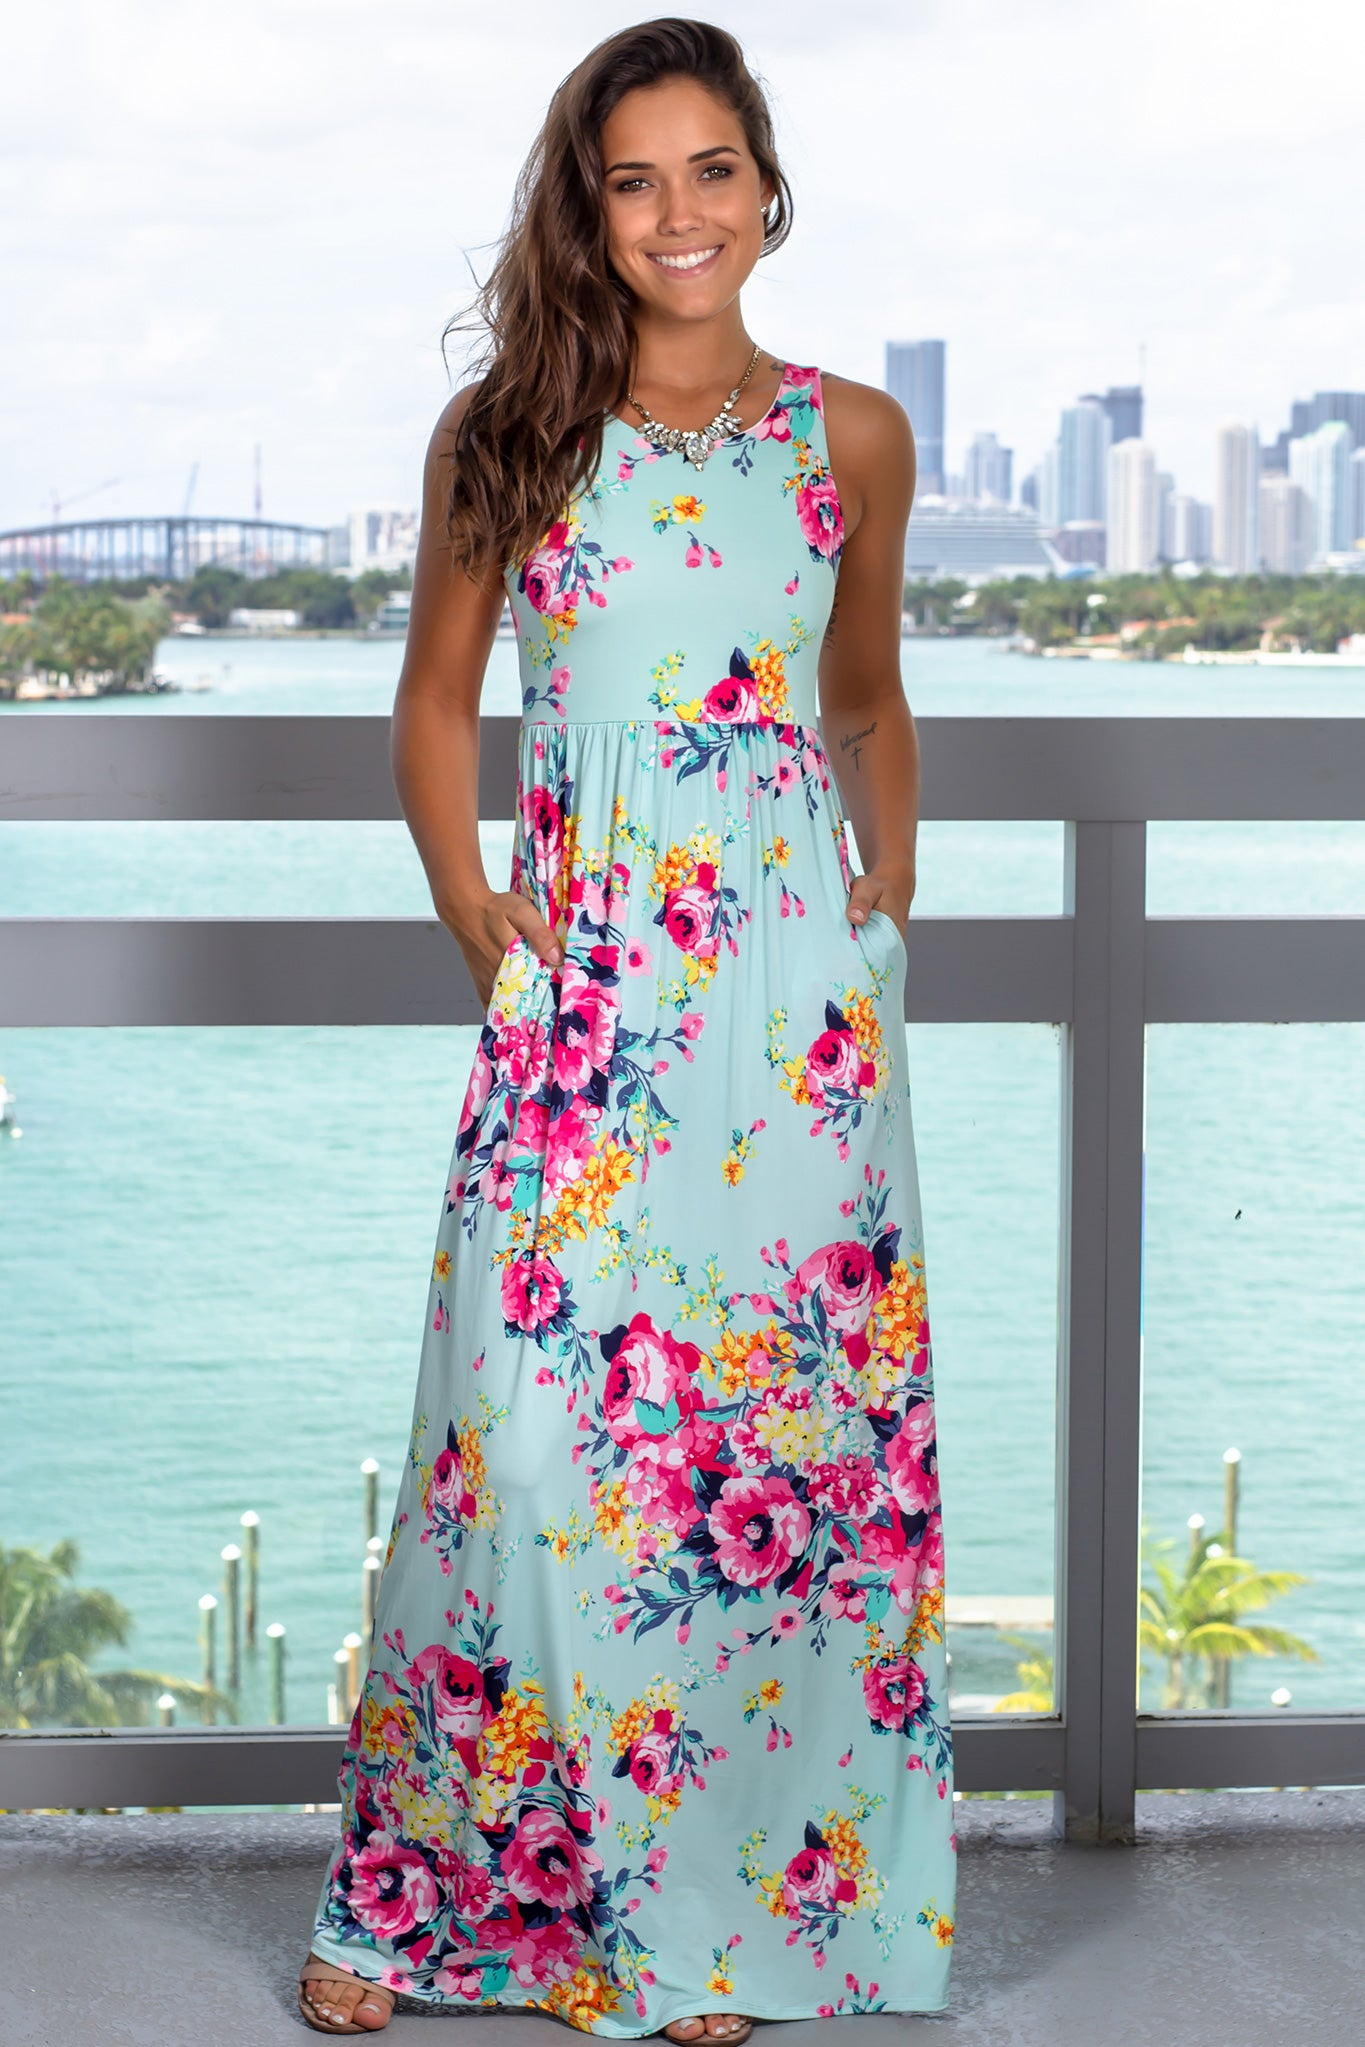 dbee501cba Mint Floral Racerback Maxi Dress with Pockets